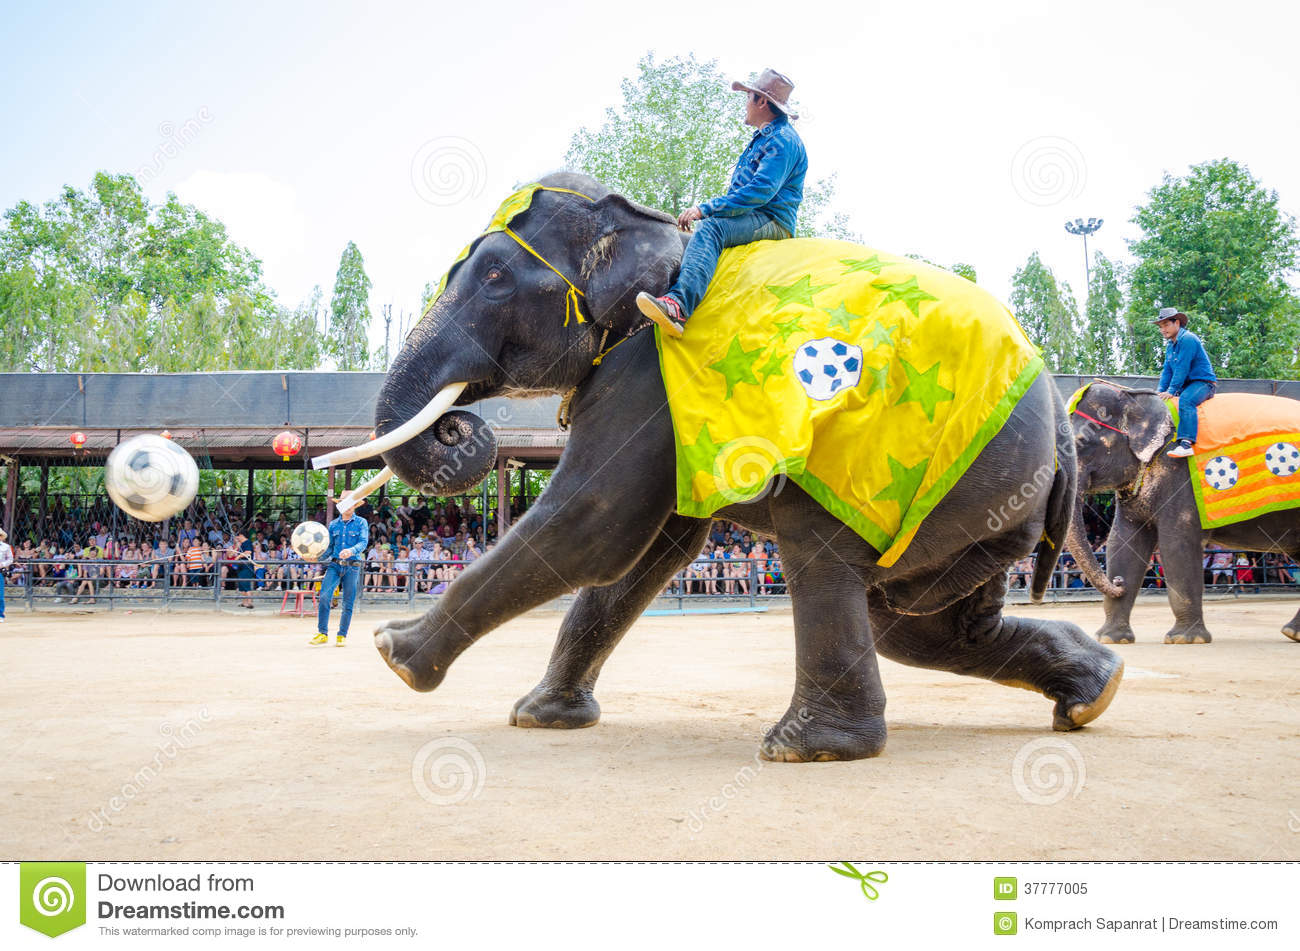 Pattaya, Thailand : Elephant playing football show.